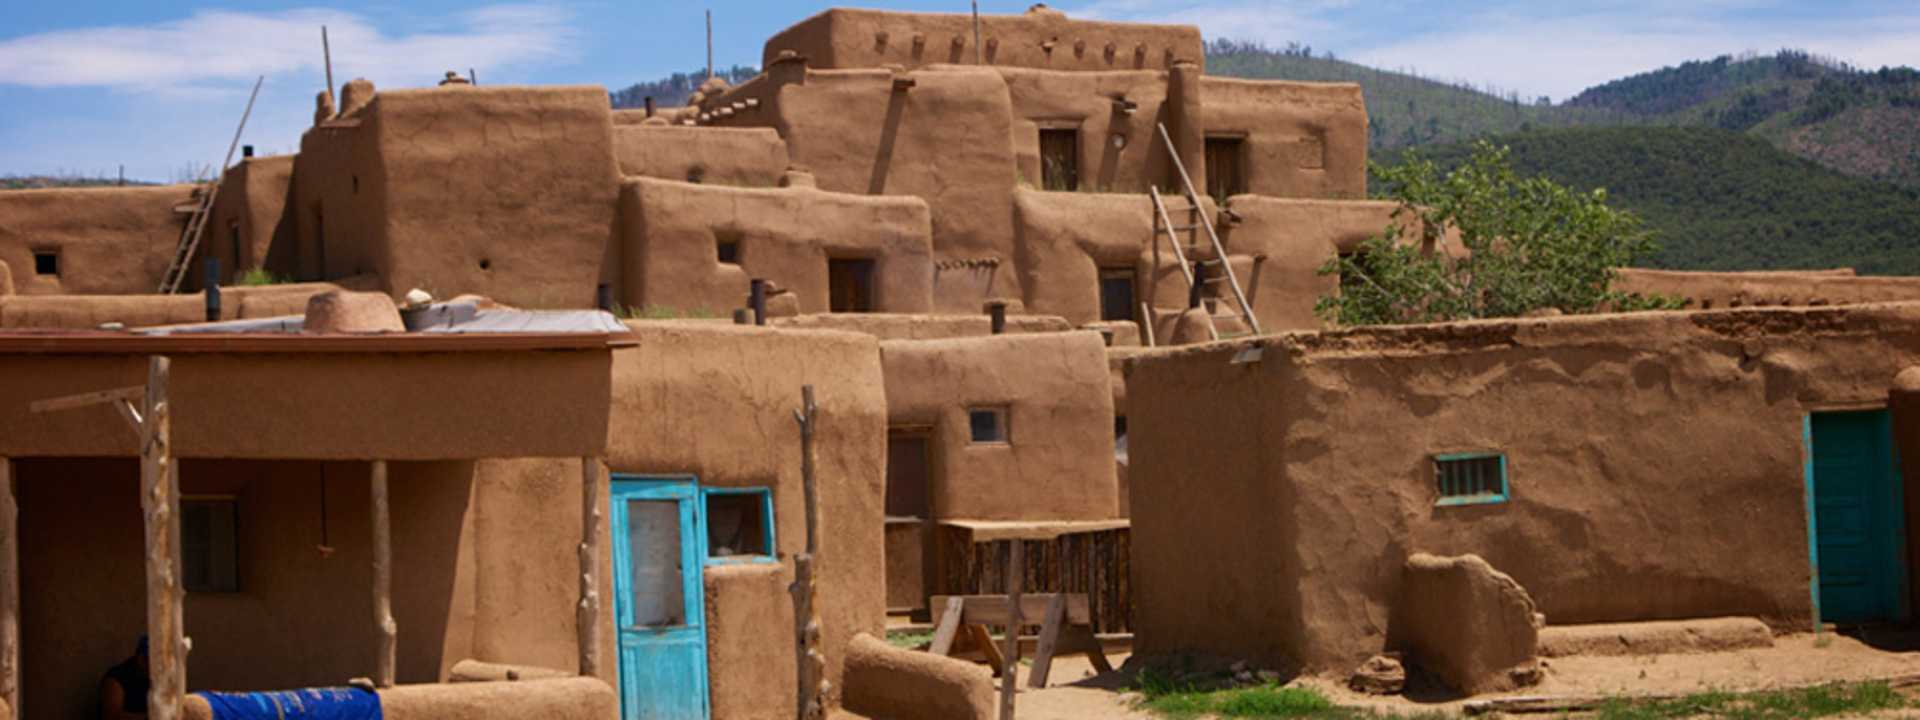 Explore New Mexico's pueblos, tribes and nations